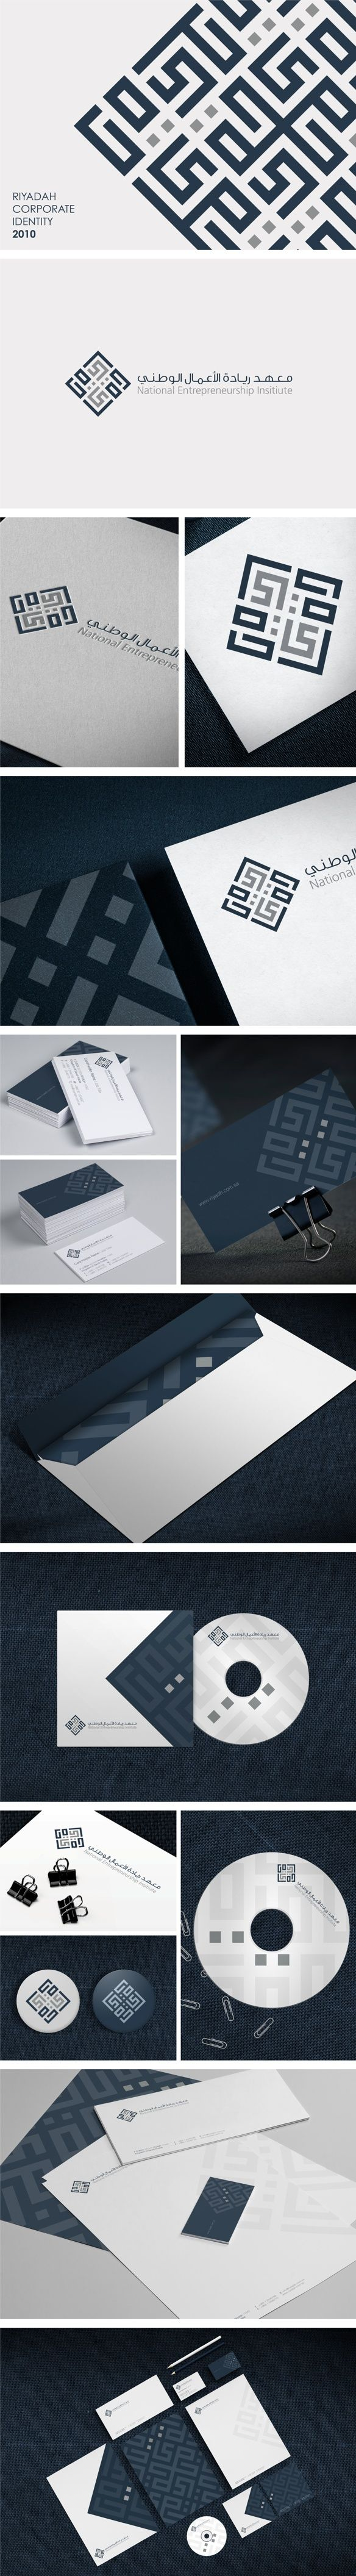 Riyadah Identity // Branding by Mohd Almousa, via Behance. The UX Blog podcast is also available on iTunes.